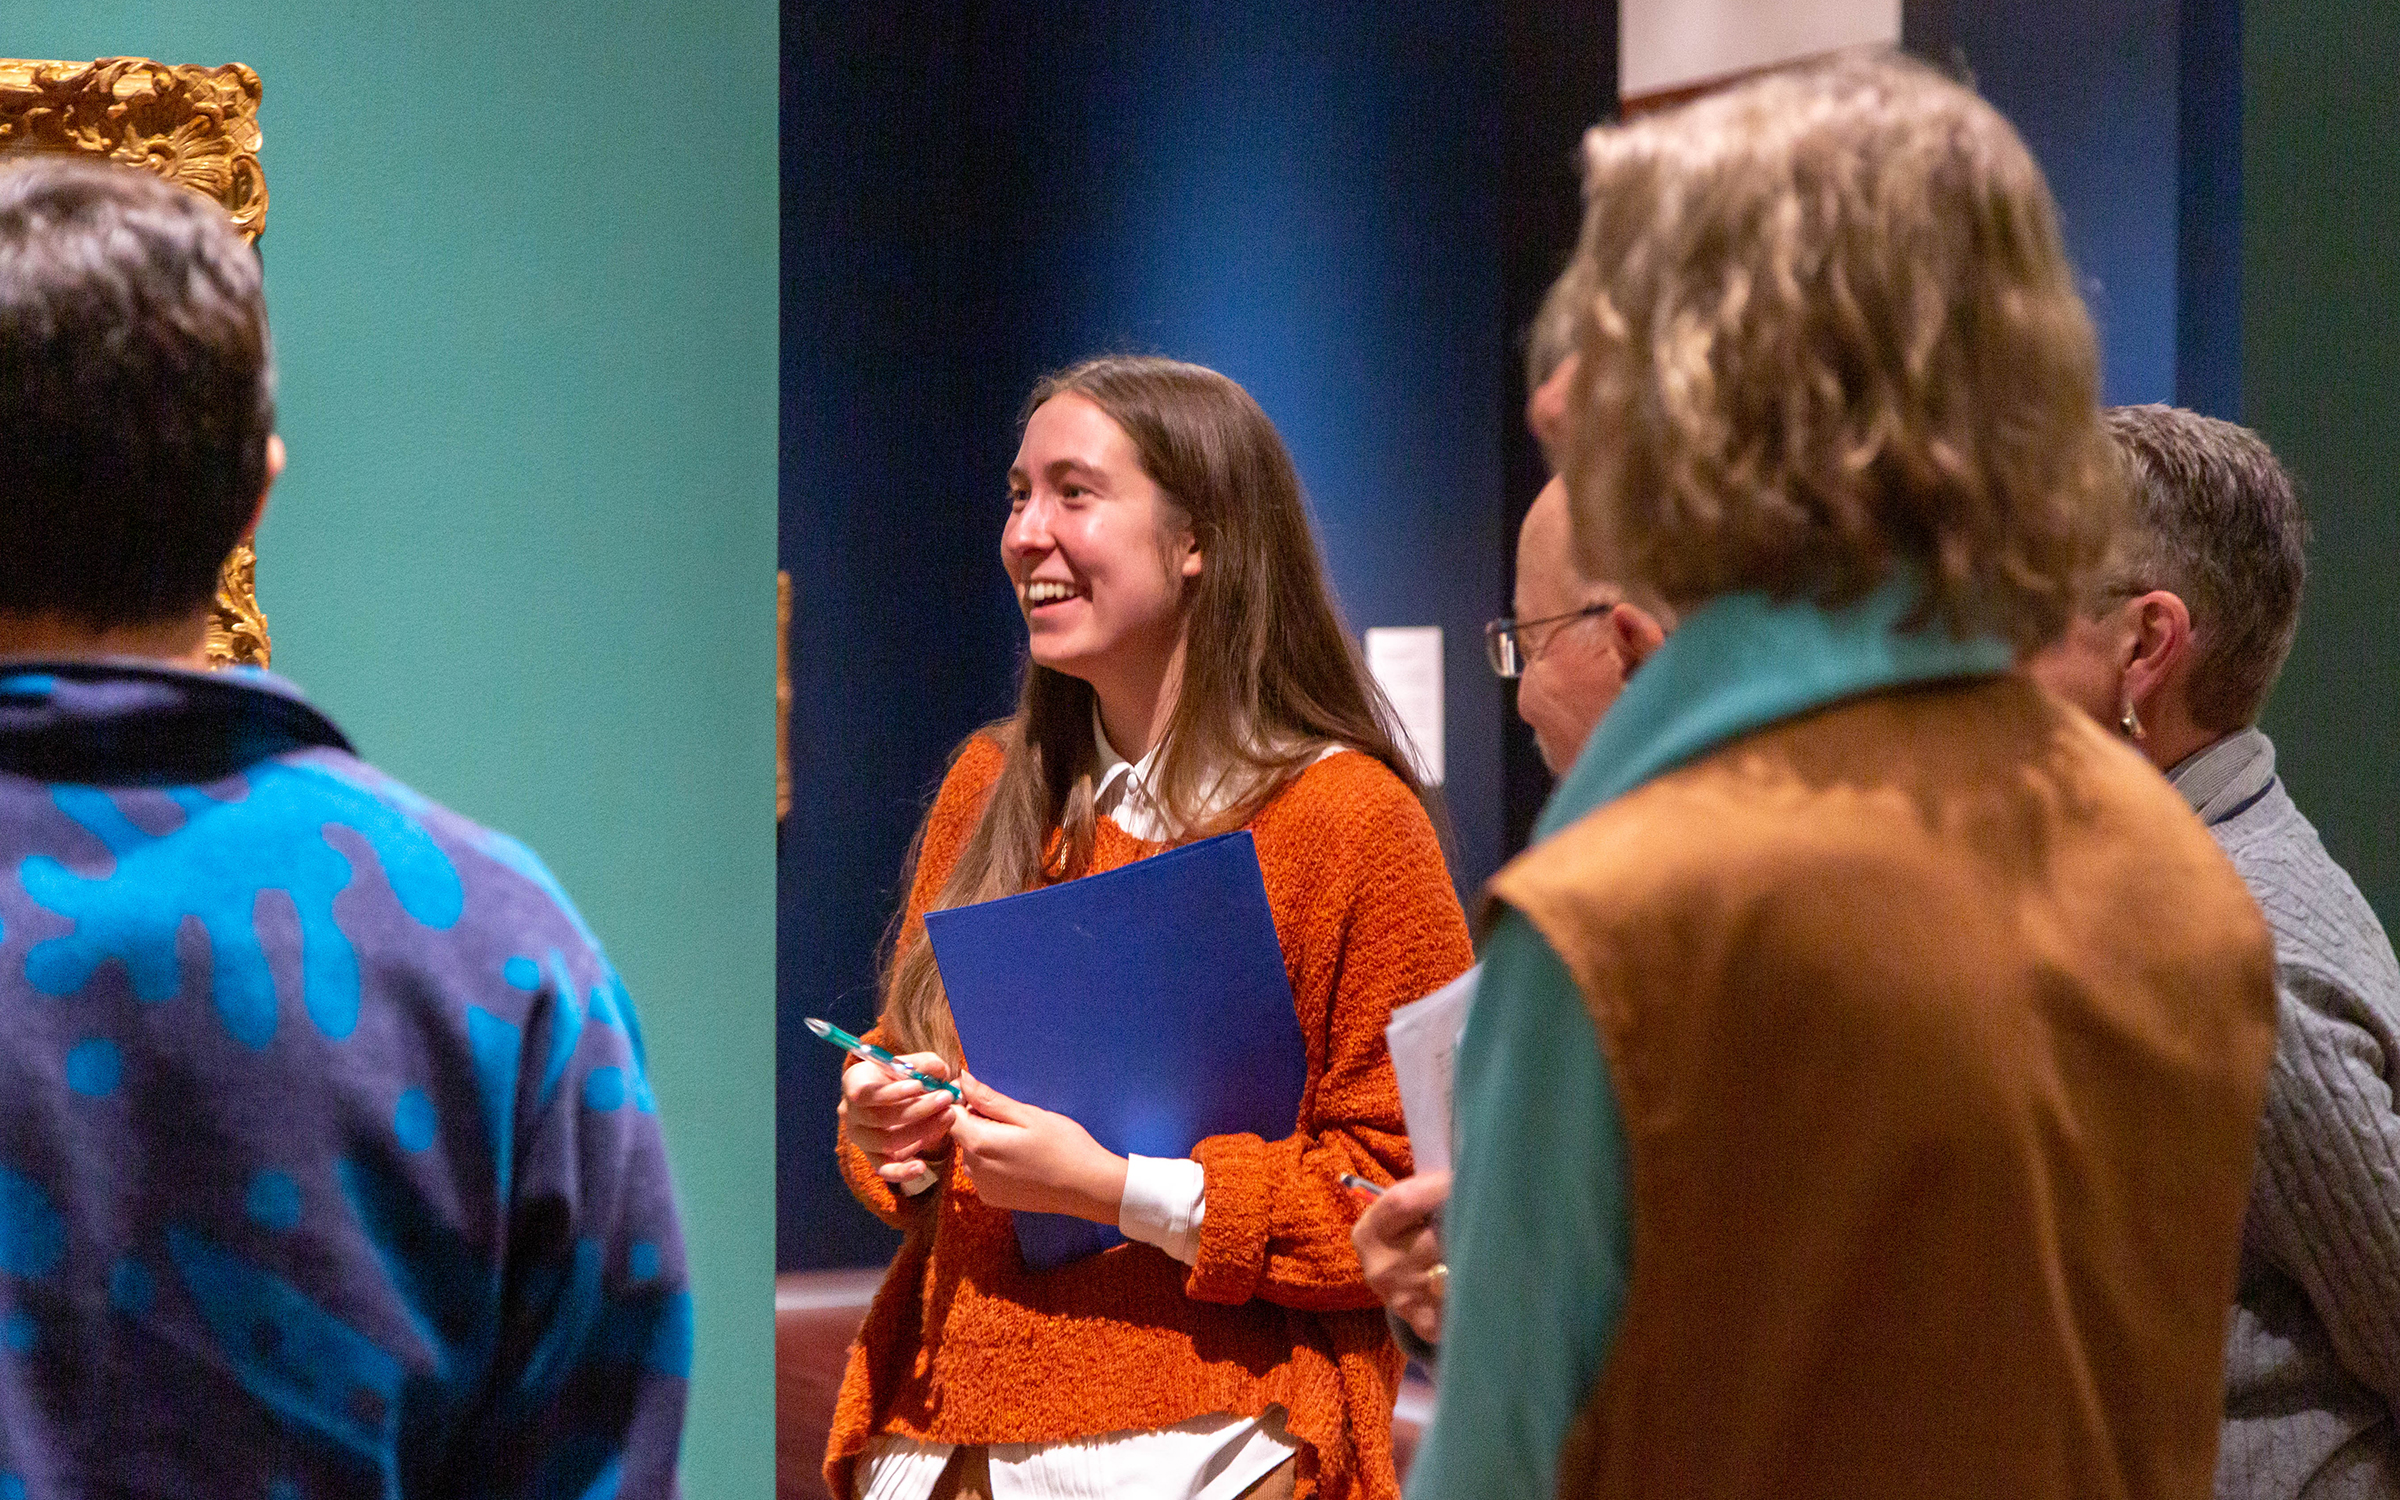 UMFA Art Ambassador training November 2019, women in orange sweater smiles while discussing painting in European Gallery